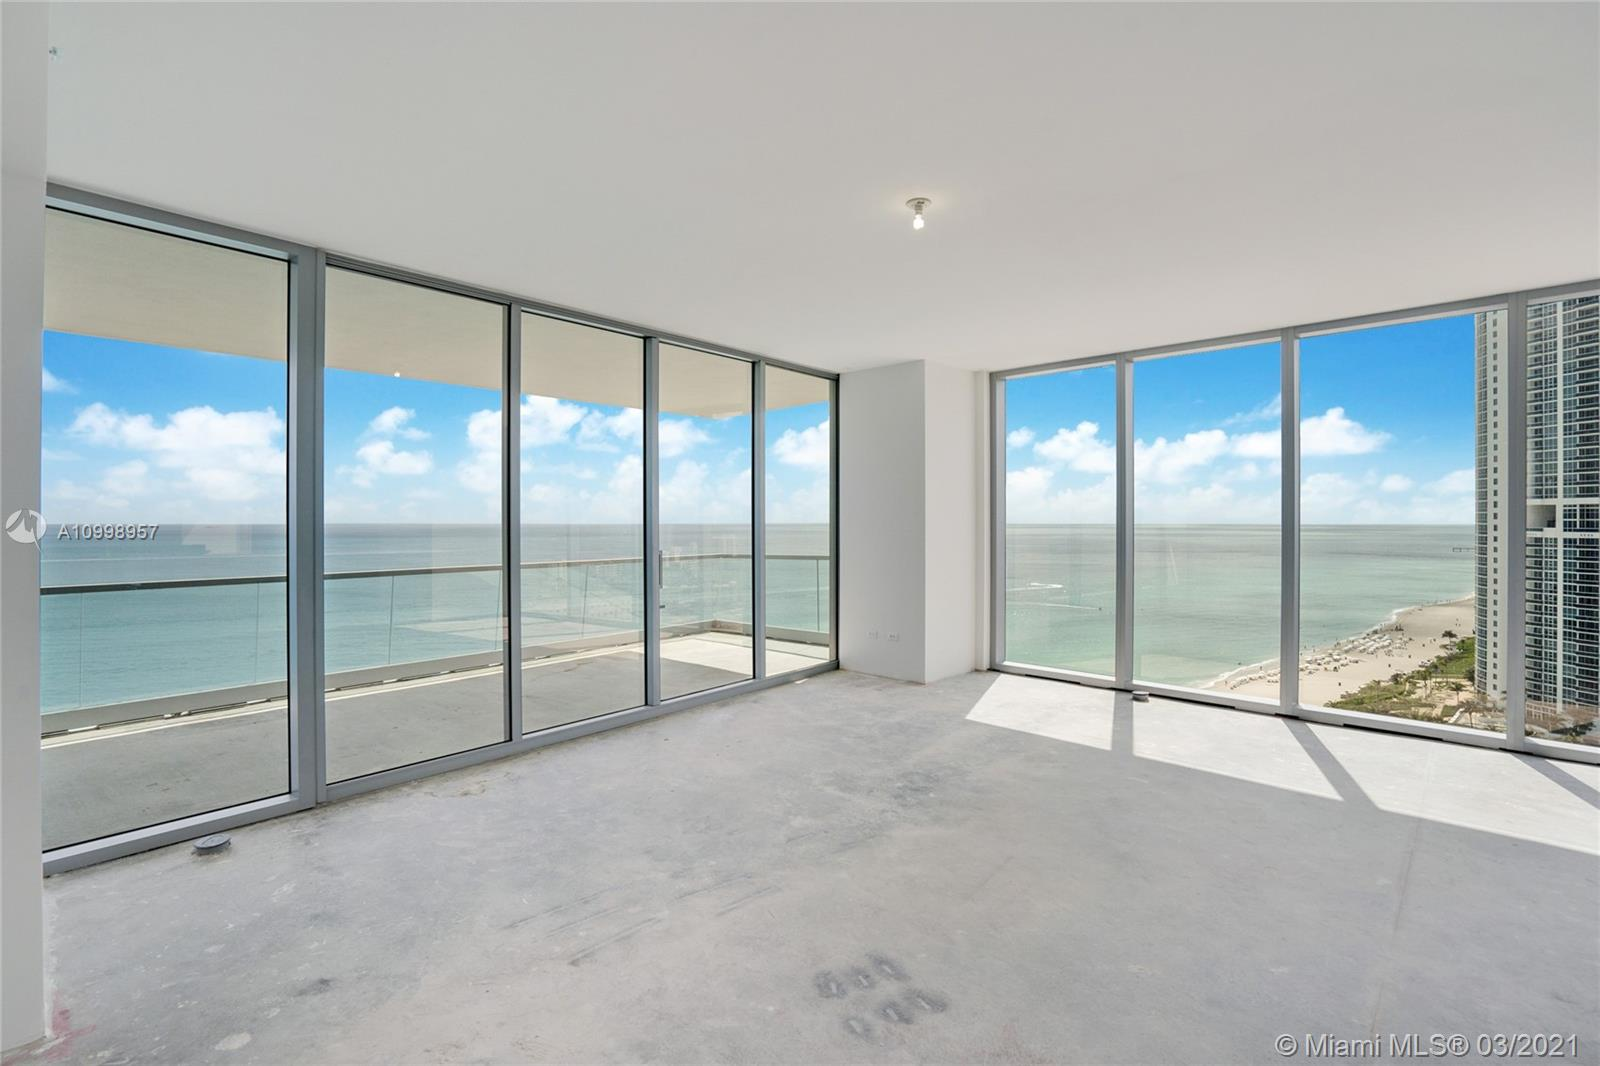 18501 Collins Ave, Unit #1804 Luxury Real Estate